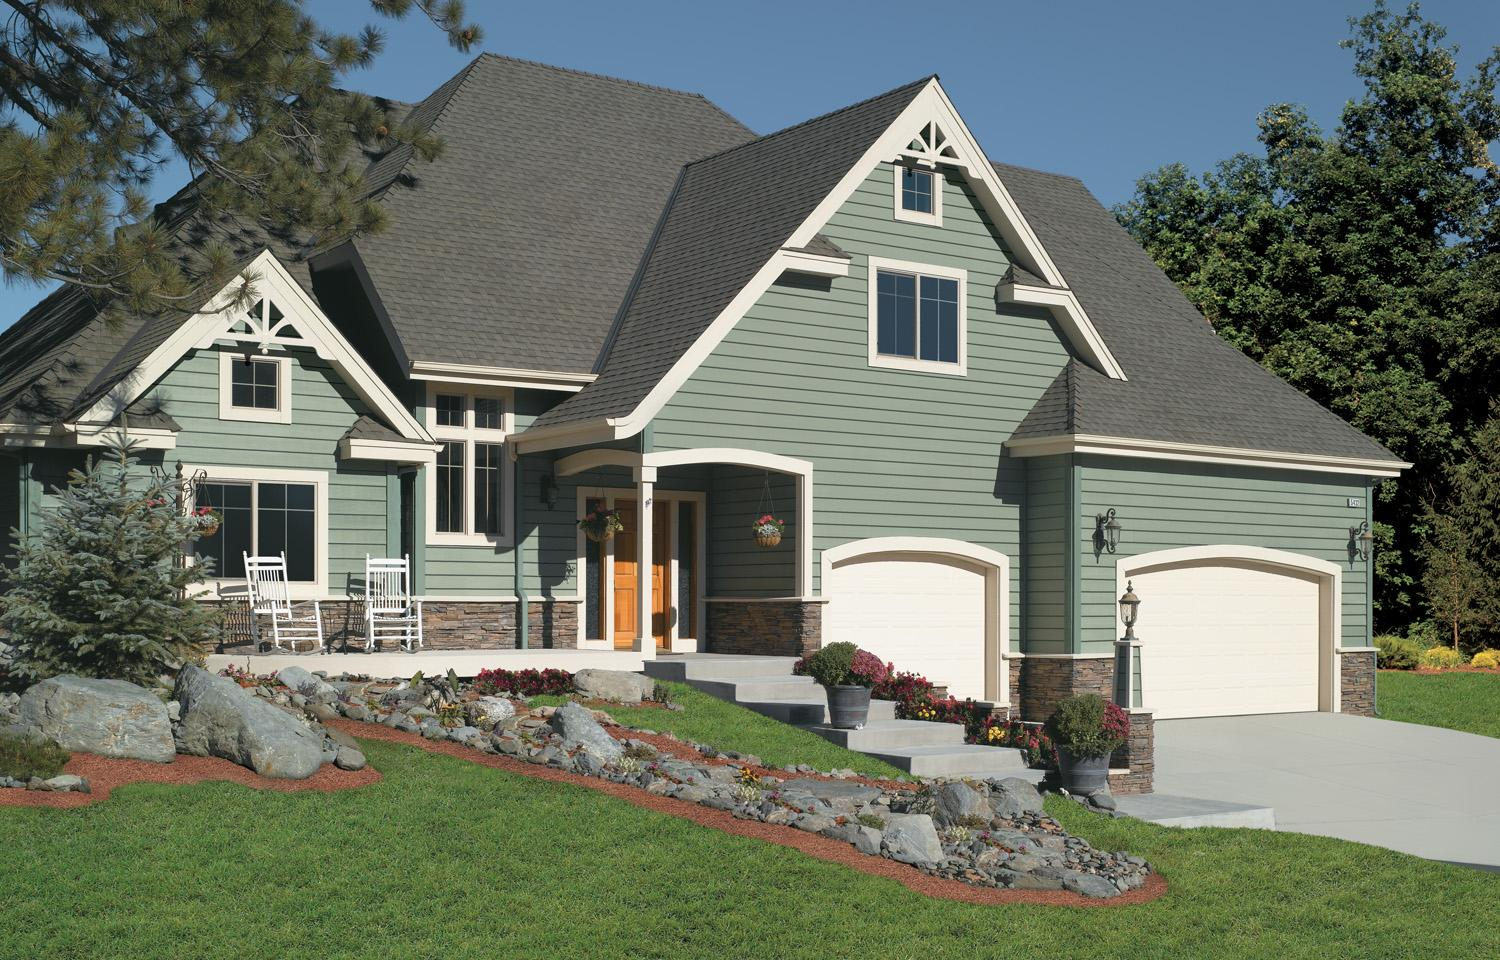 4 types of fiber cement siding for your home pros and cons for Fibre cement siding pros and cons